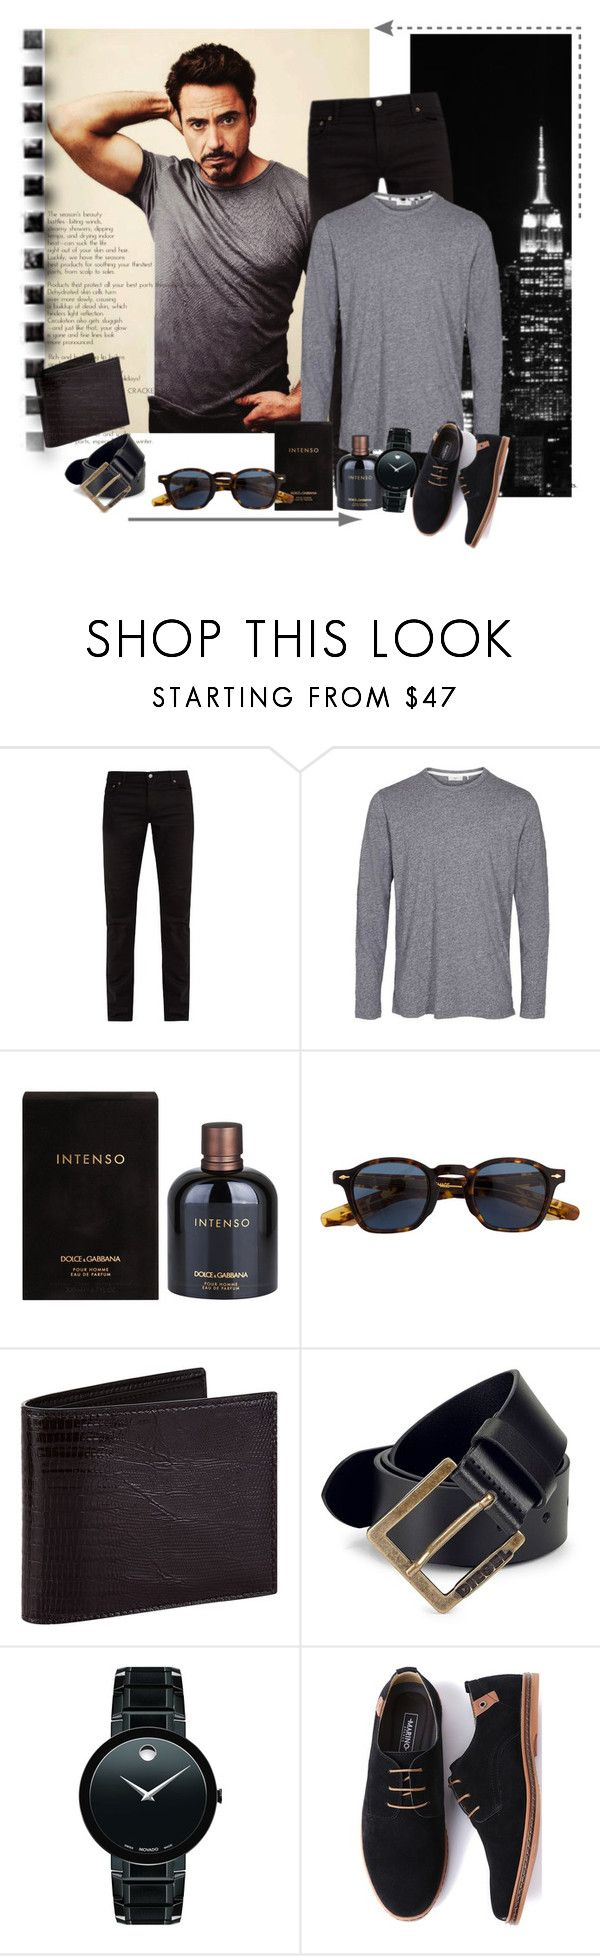 """""""I'm sexy and I know it!"""" by schneerose ❤ liked on Polyvore featuring Acne Studios, Dolce&Gabbana, Jacques Marie Mage, Tom Ford, Diesel, Movado, men's fashion and menswear"""